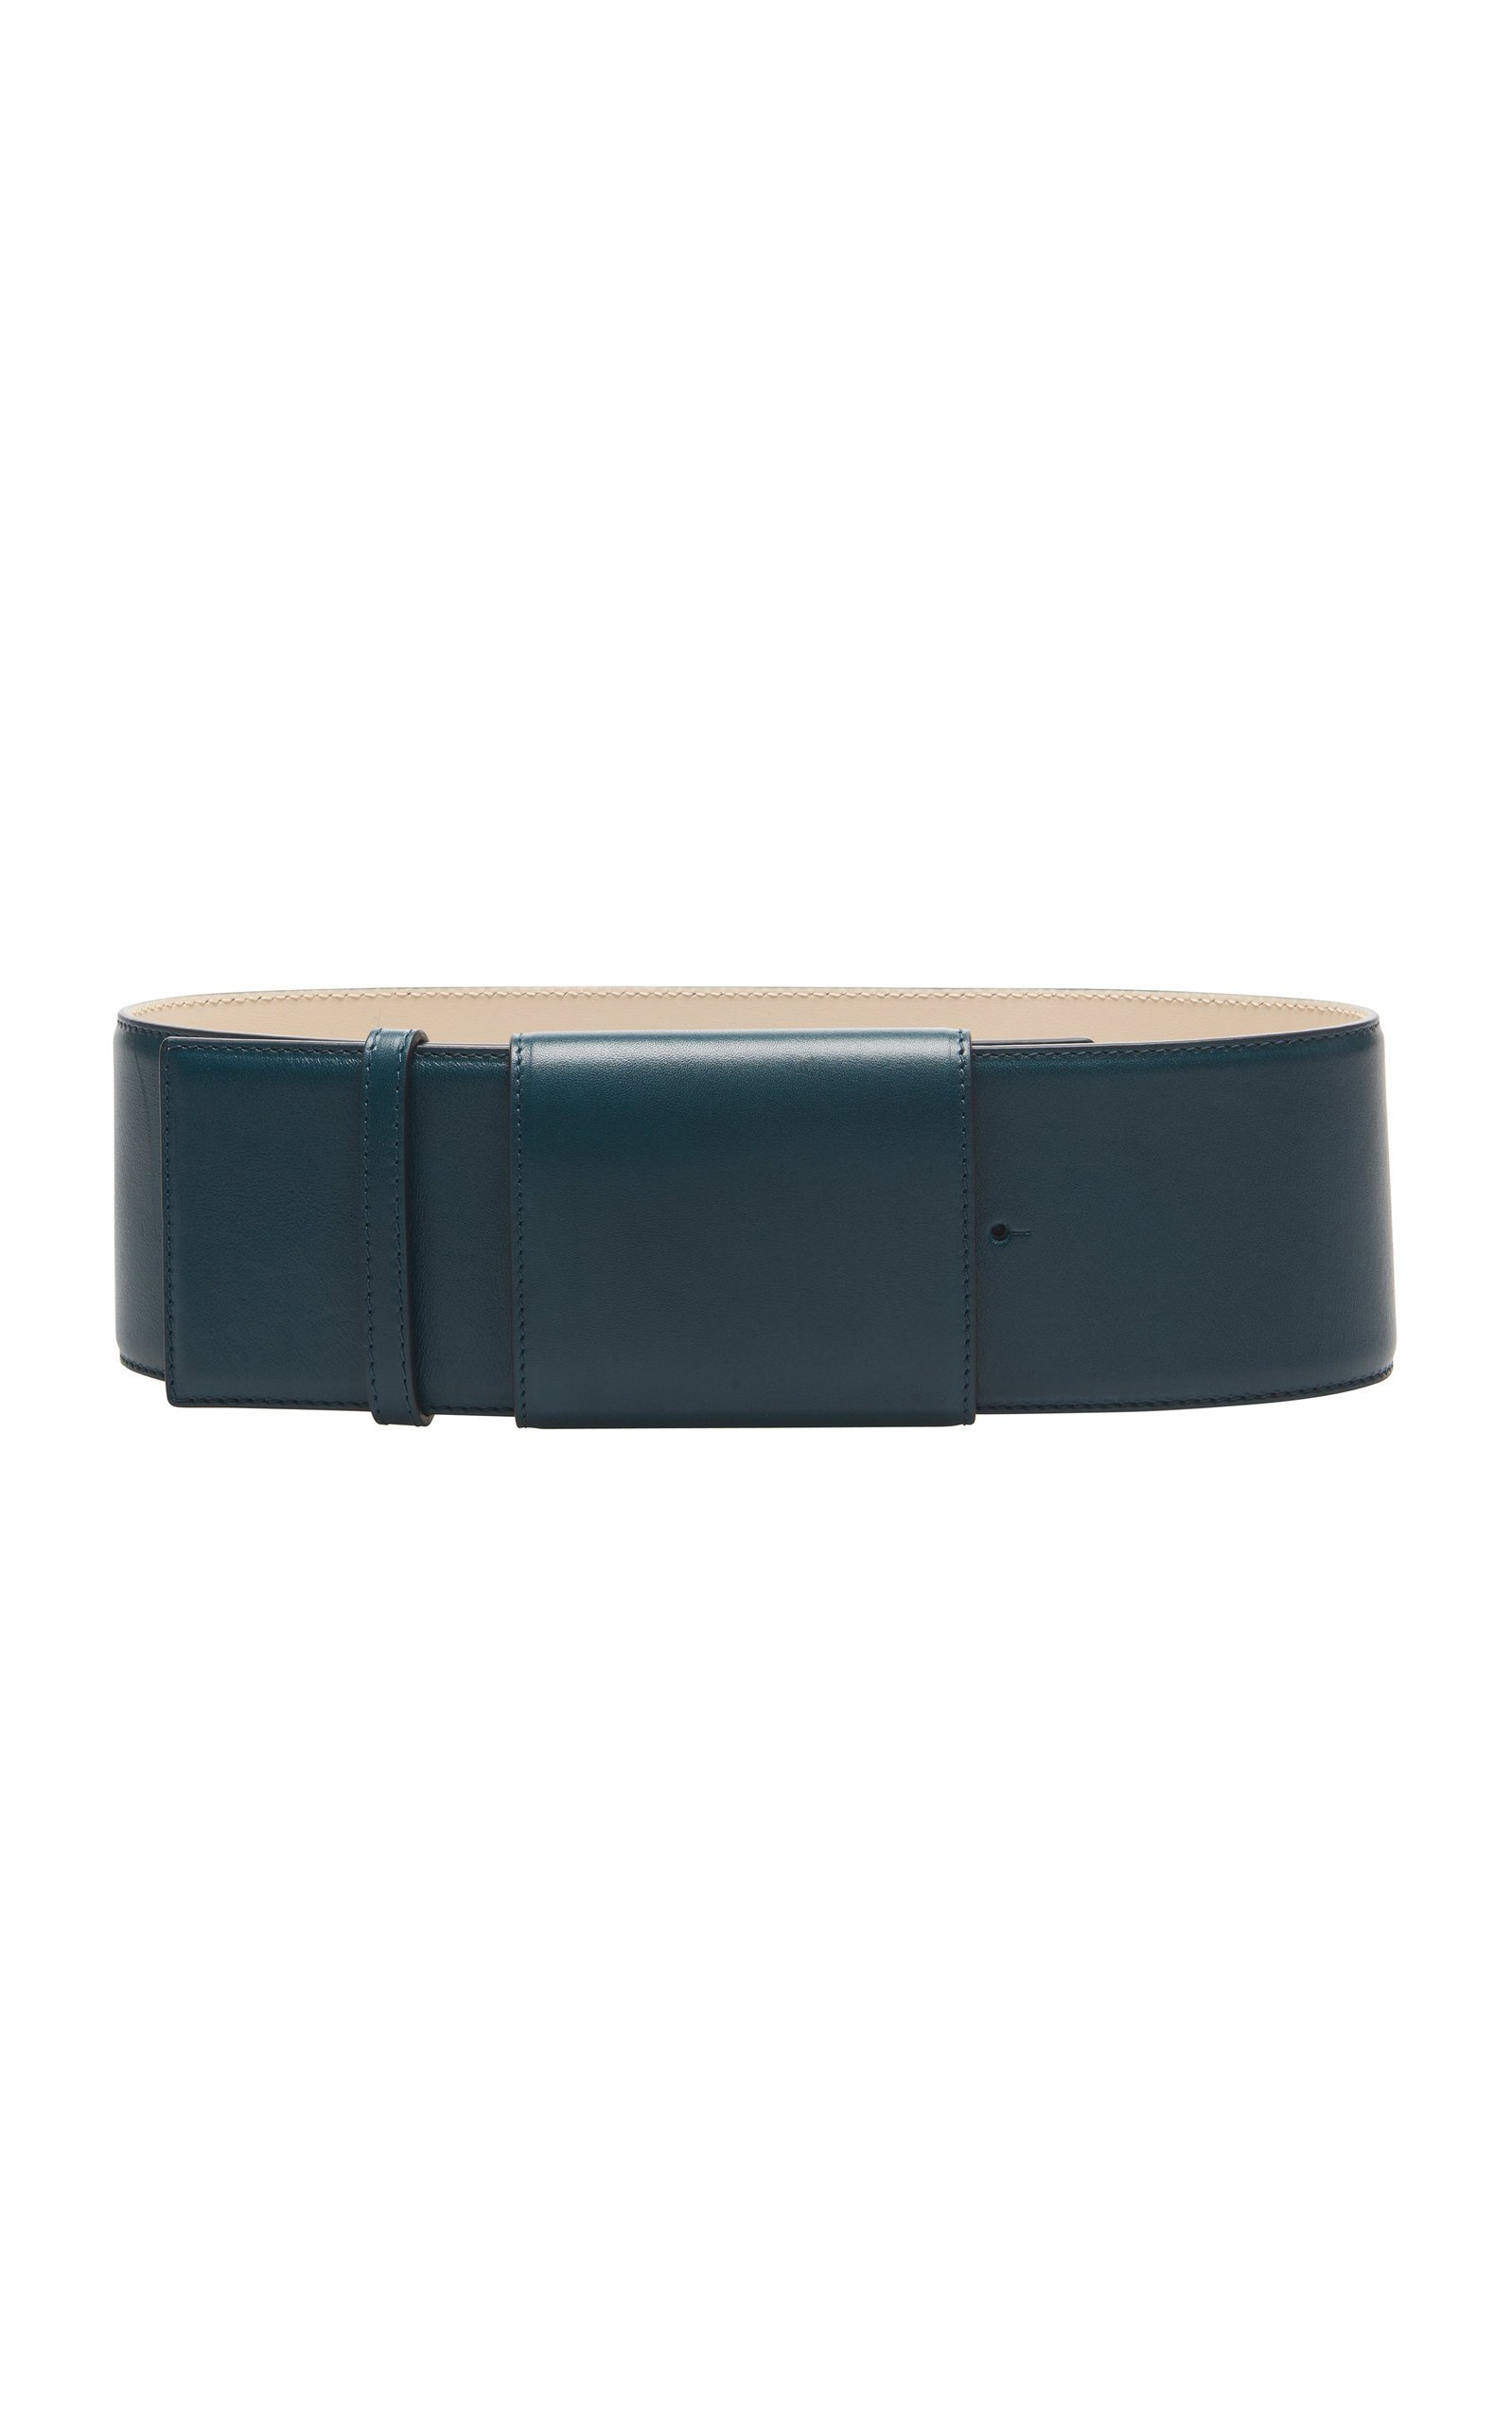 Marni Covered-Buckle Leather Belt Size: 90 cm